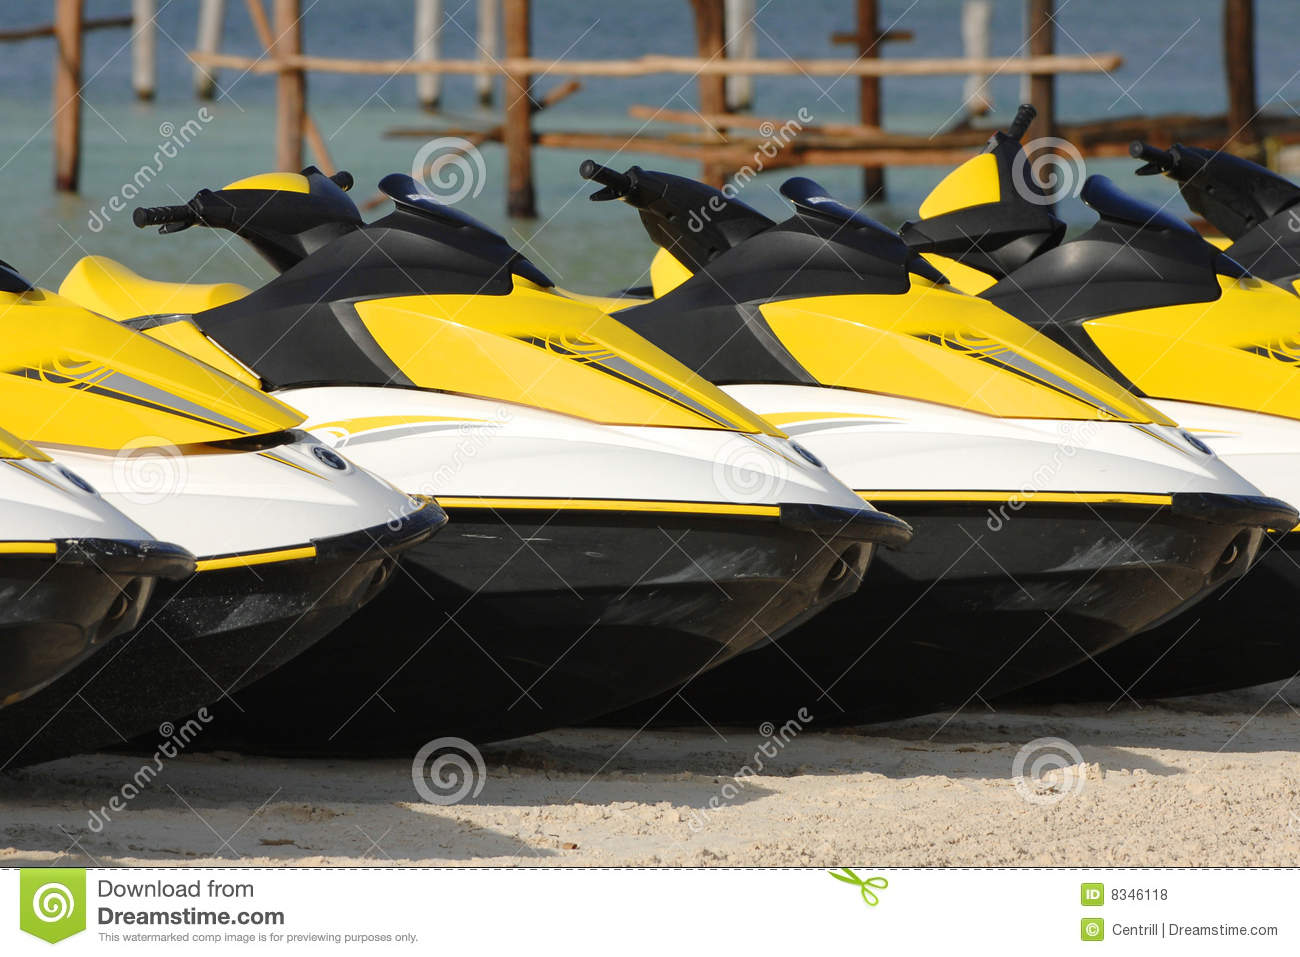 Jet Boats Images